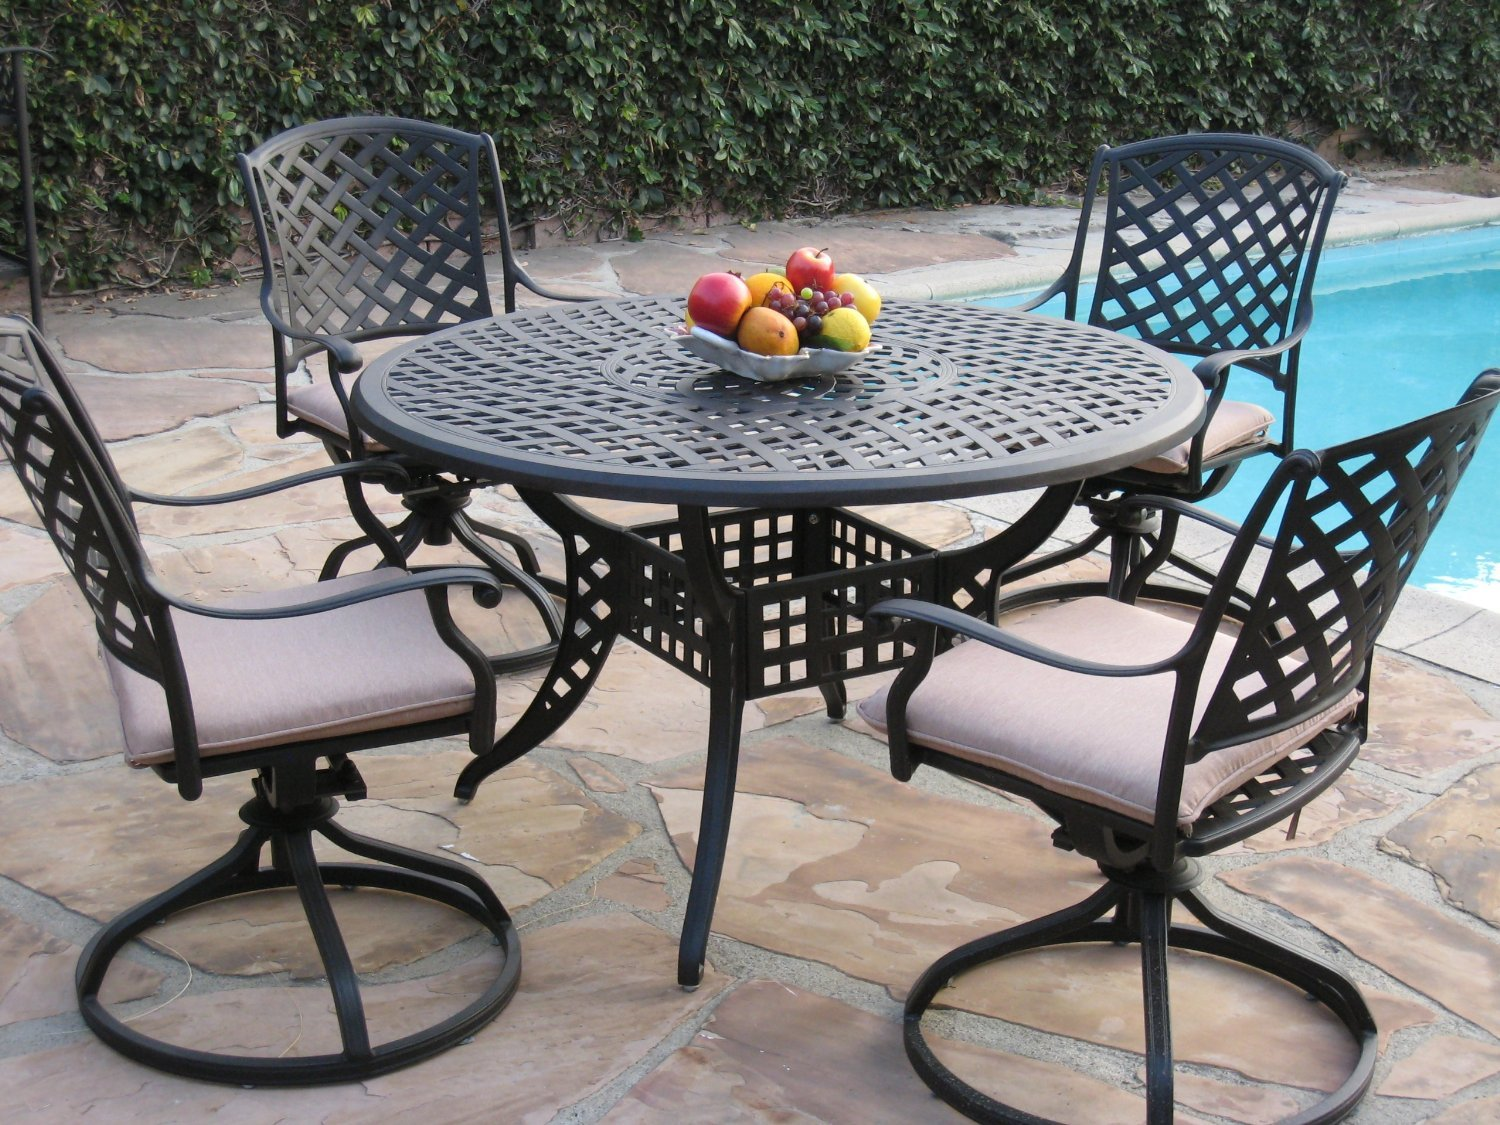 Amazon.com: Kawaii Collection Cast Aluminum Outdoor Patio Furniture ...